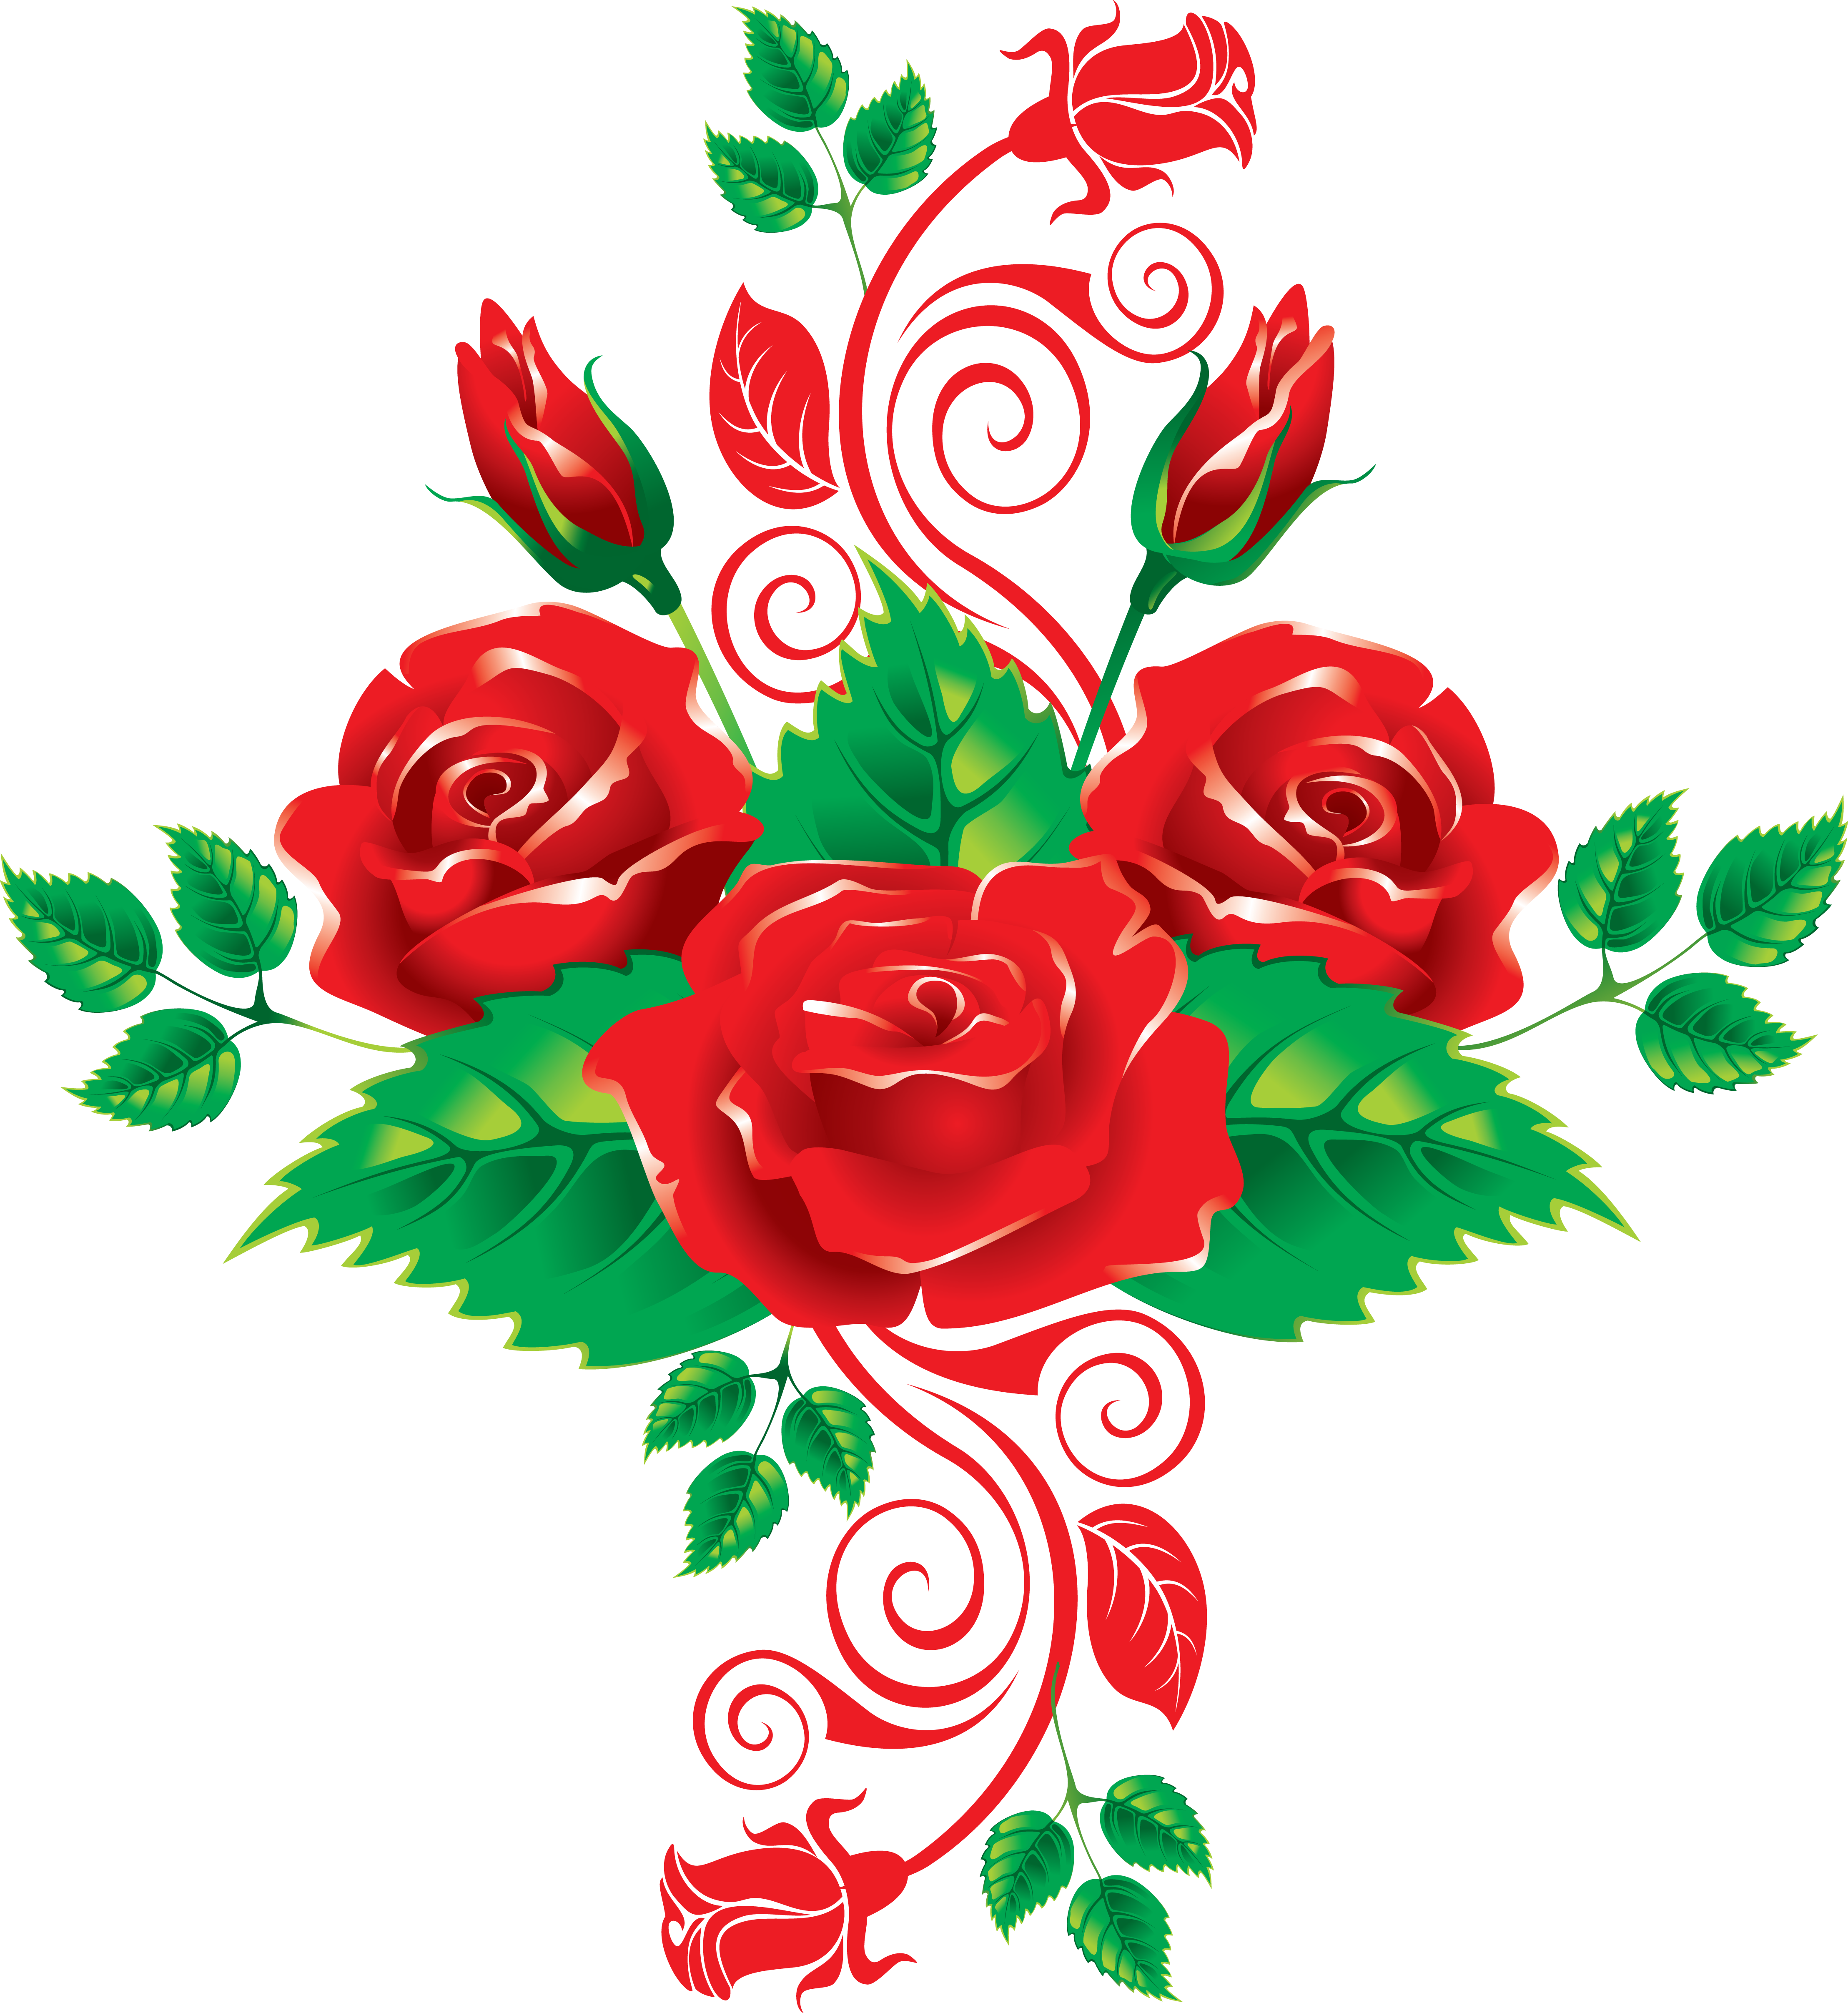 Lime green rose with heart clipart png freeuse library Rose Clip art - roses garden 4433*4828 transprent Png Free Download ... png freeuse library